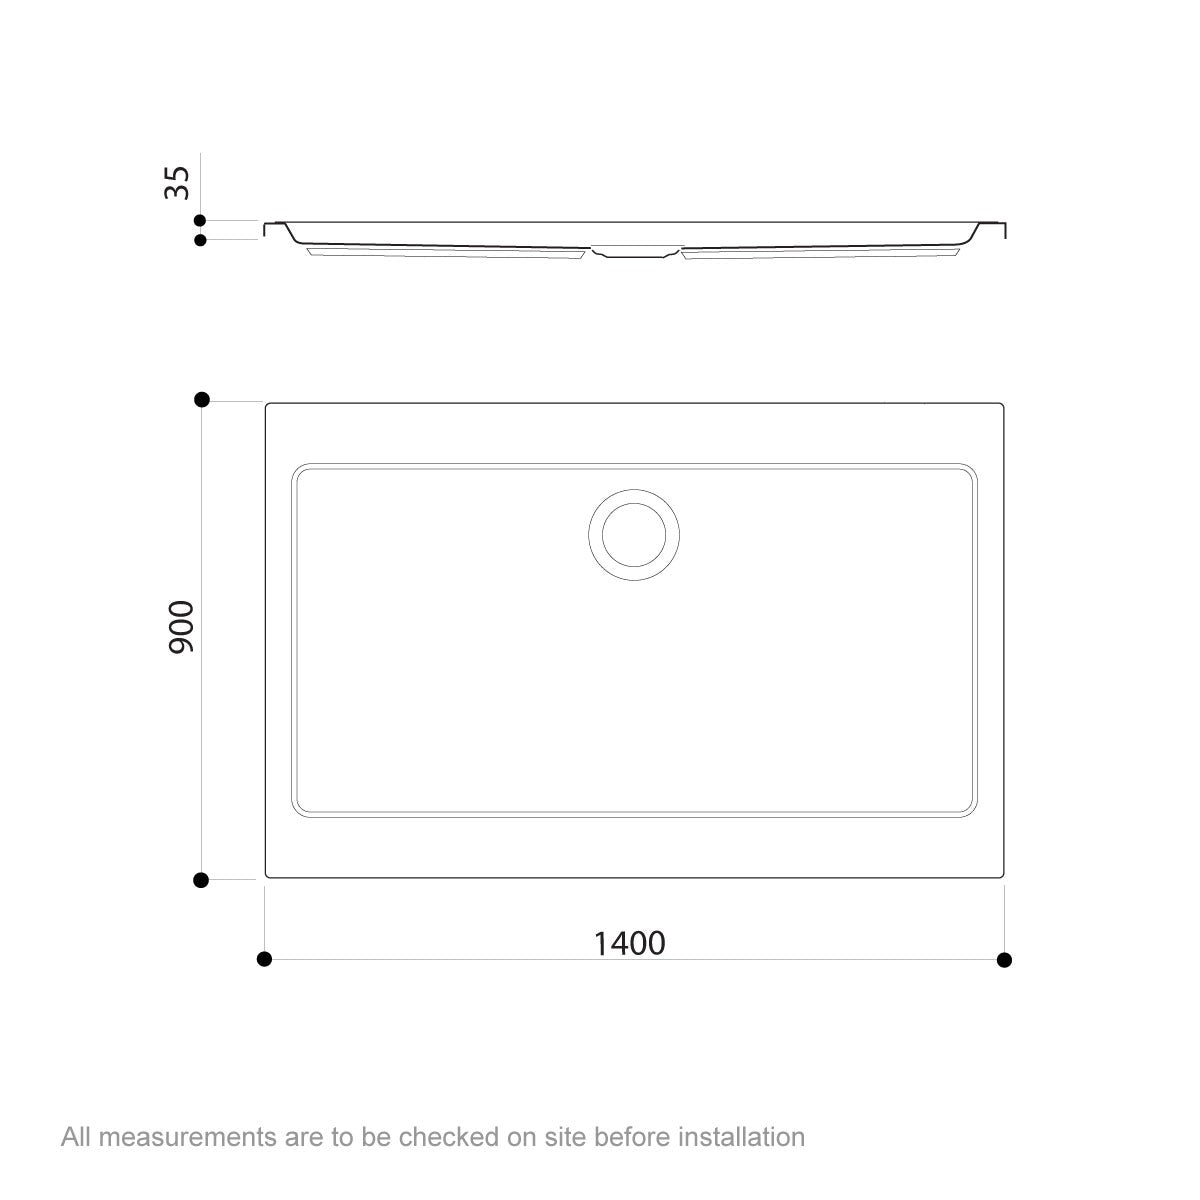 Dimensions for Jacuzzi Essentials matt white acrylic shower tray 1400 x 900